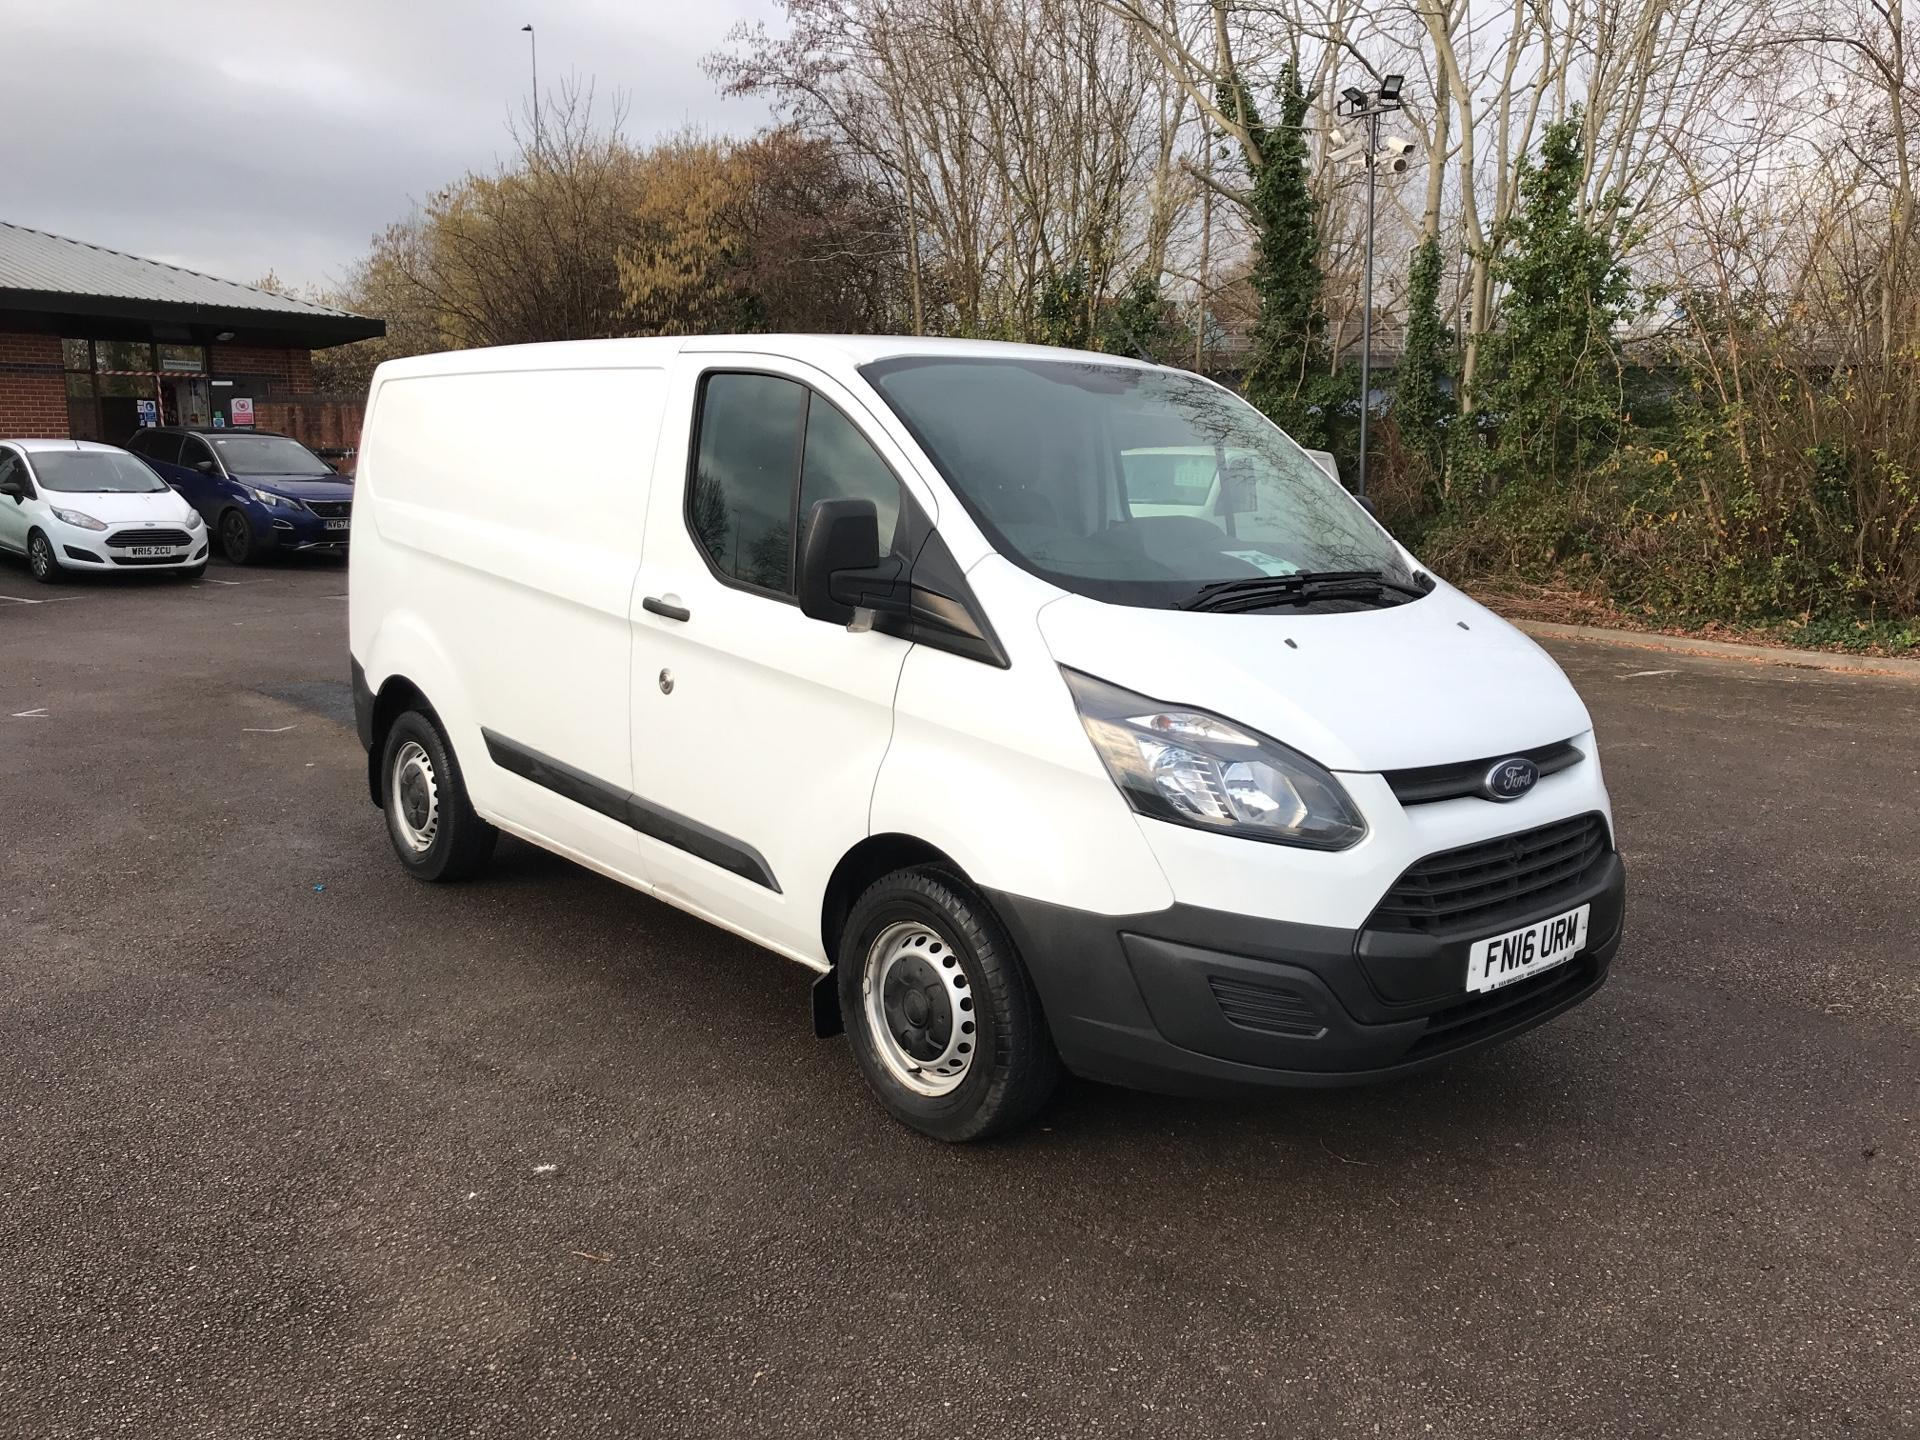 2016 Ford Transit Custom 290 L1 DIESEL FWD 2.2  TDCI 100PS LOW ROOF VAN EURO 5 (FN16URM)